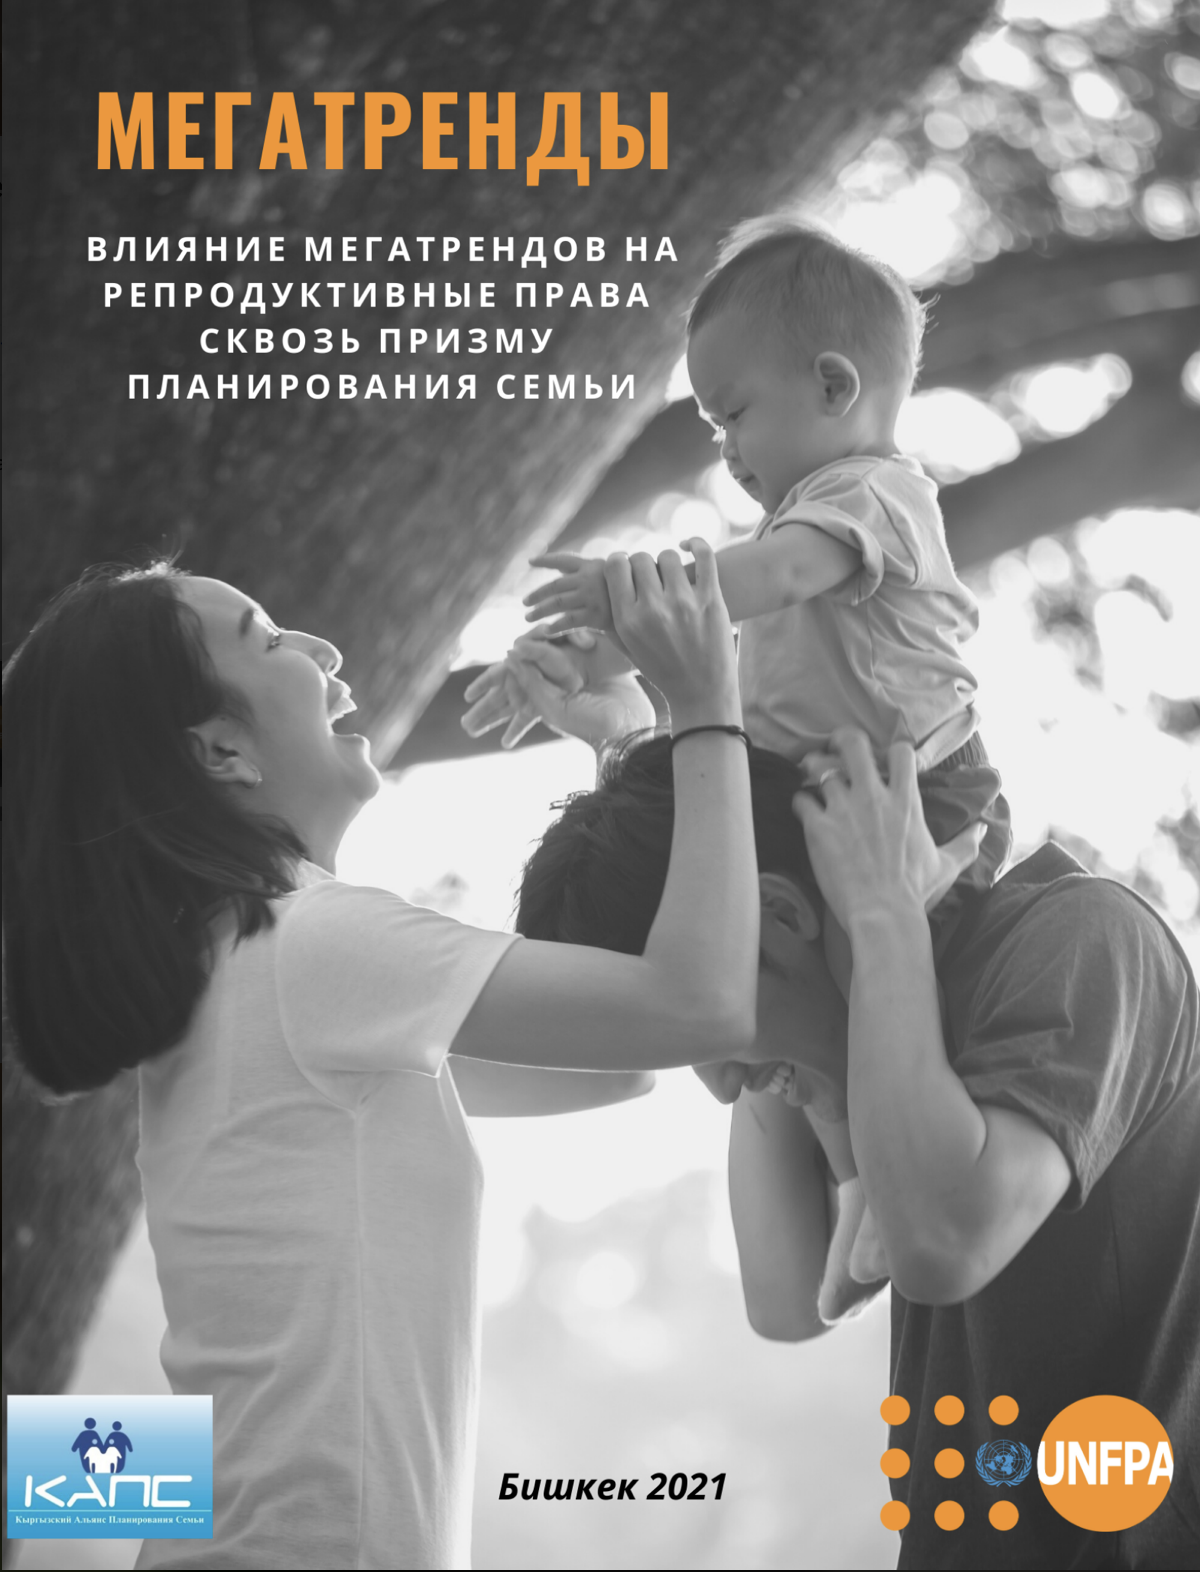 Impact of Megatrends on Reproductive Rights through the Lens of Family Planning